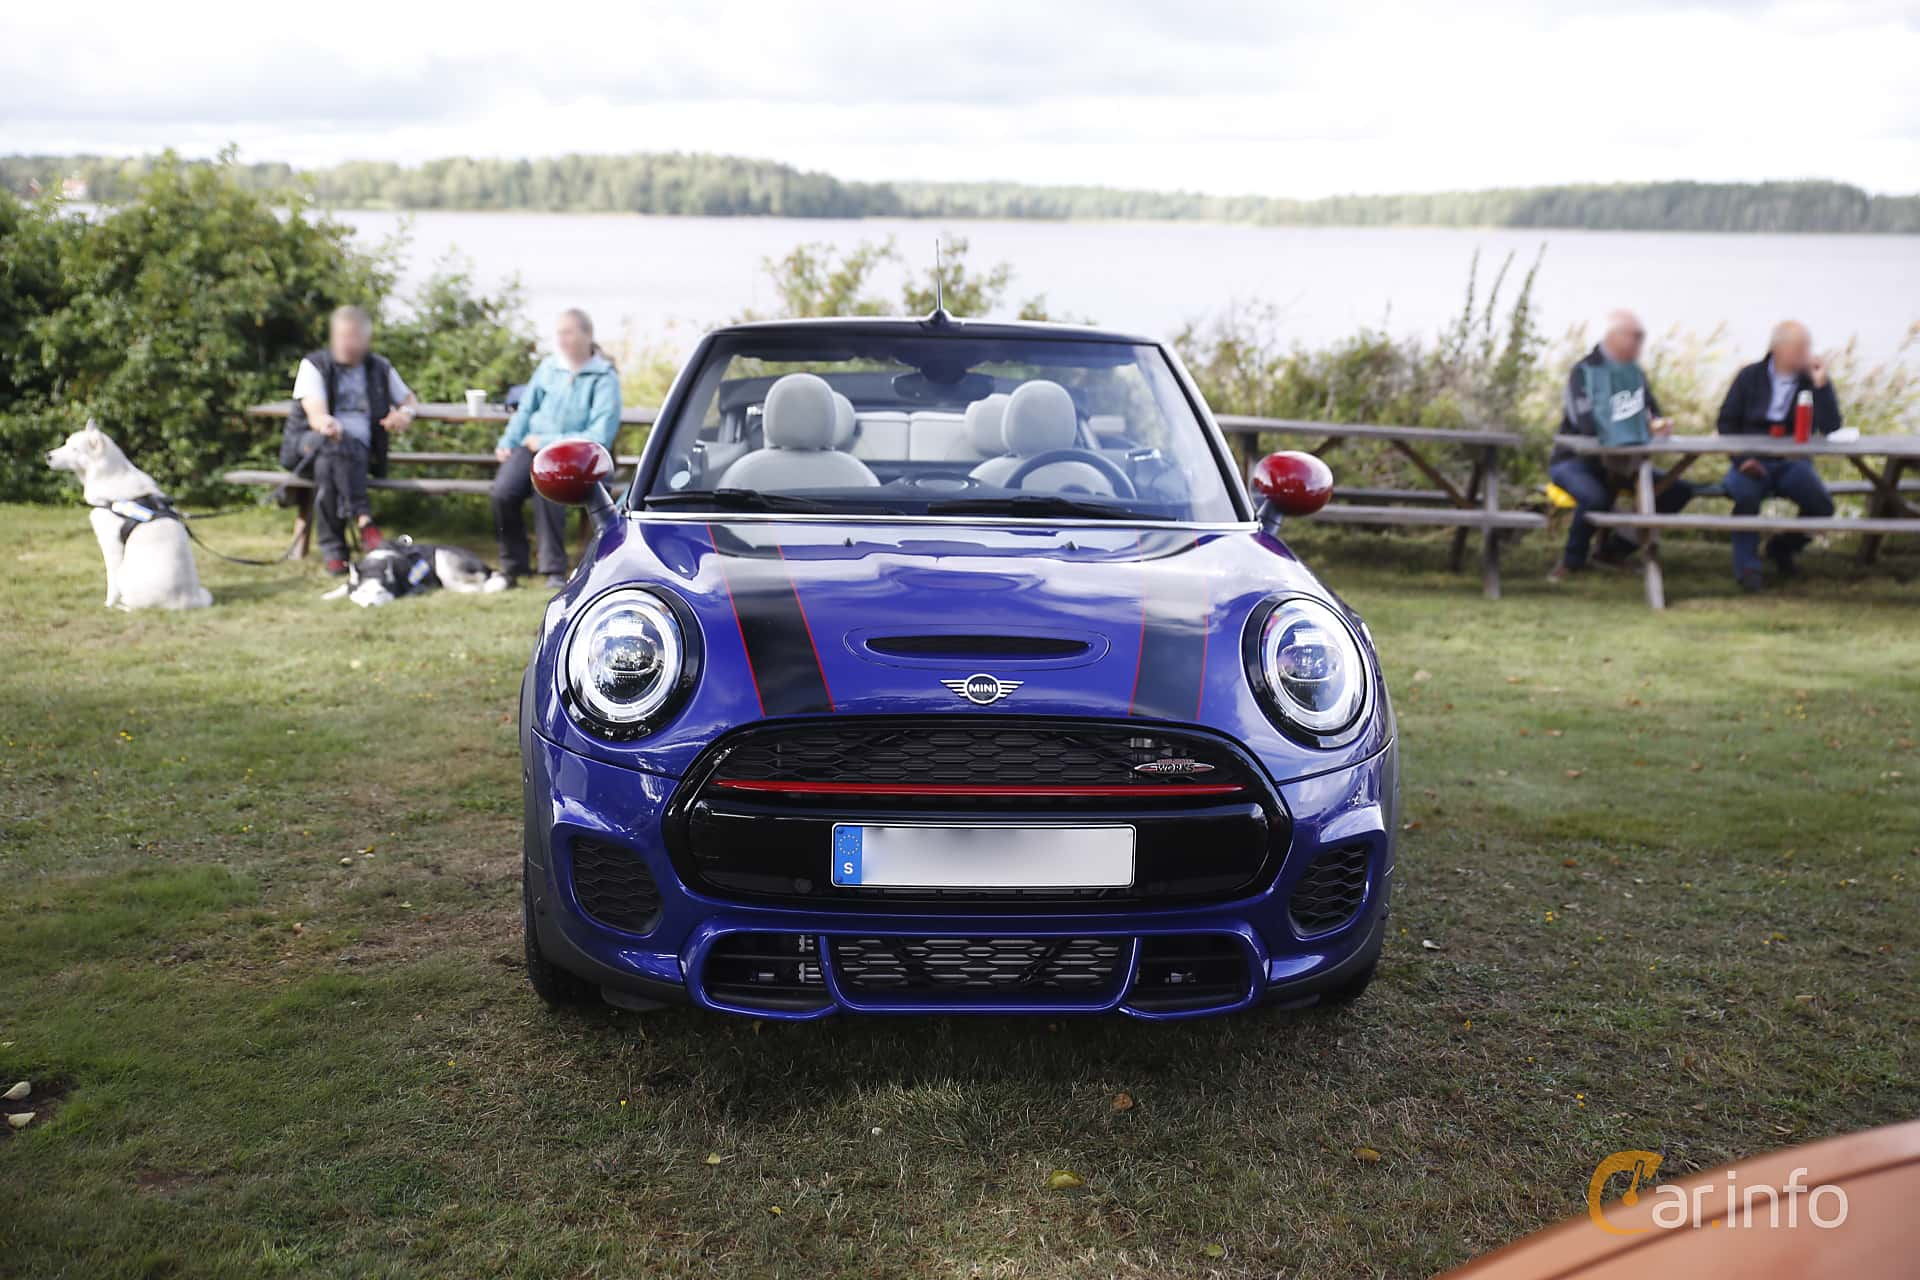 6 Images Of Mini John Cooper Works Convertible Automatic 231hp